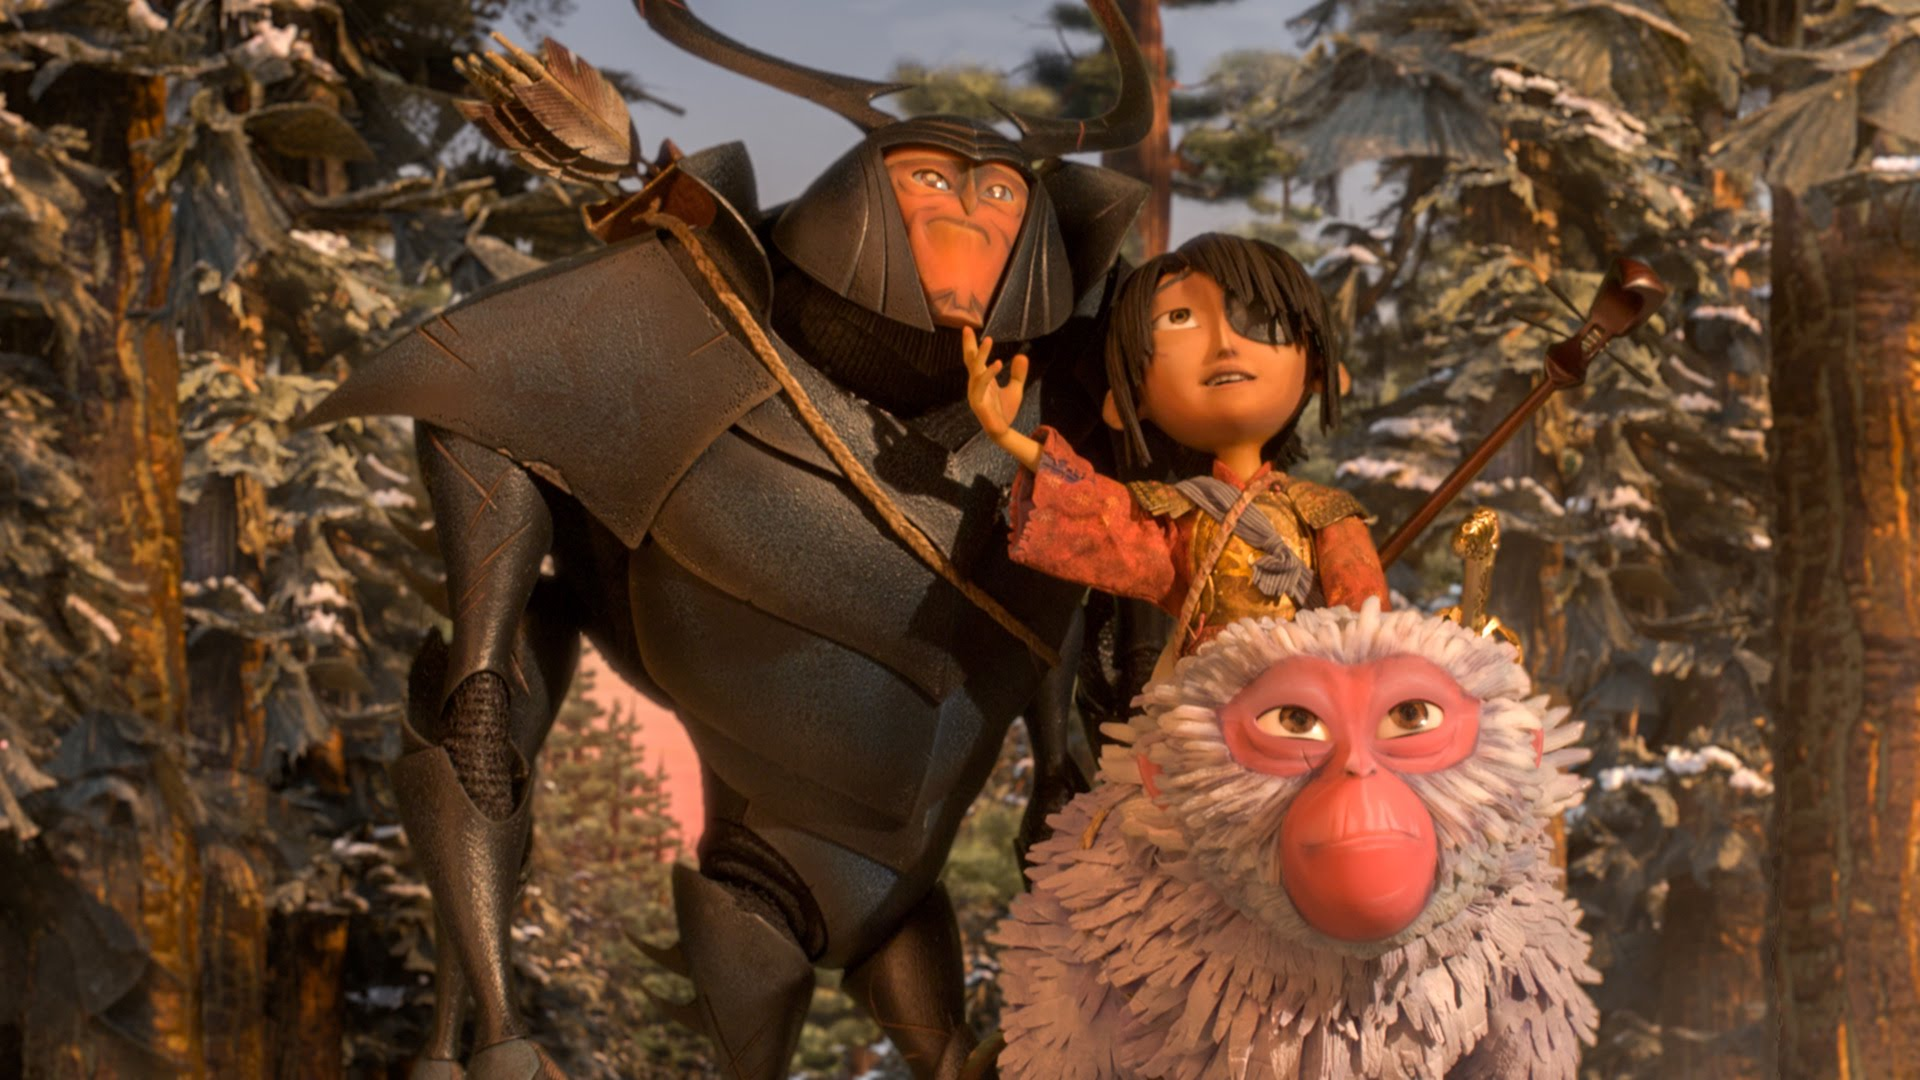 'Kubo and the Two Strings' is a attractive journey